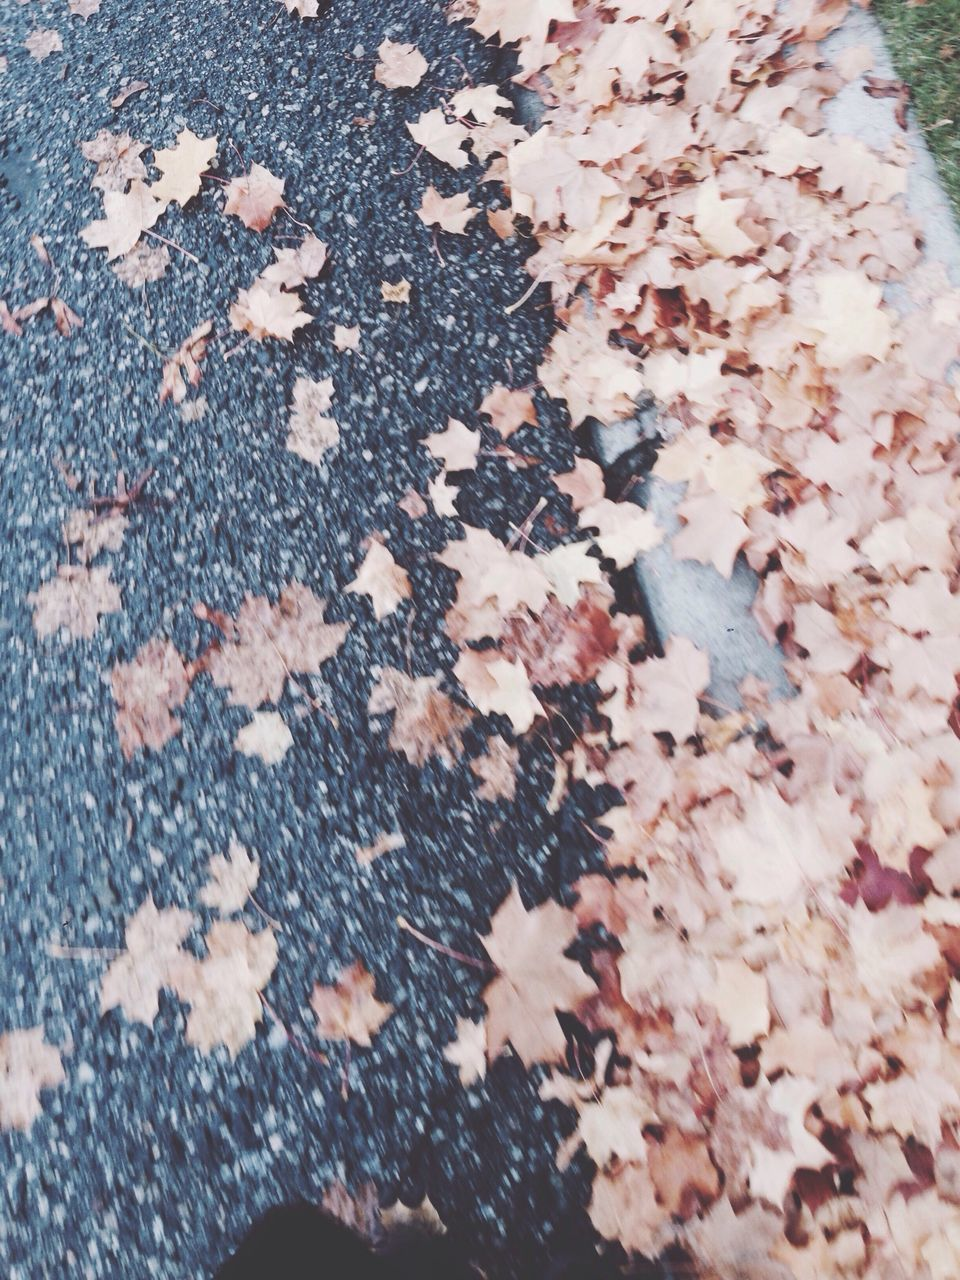 High Angle View Of Maple Leaves On Sidewalk